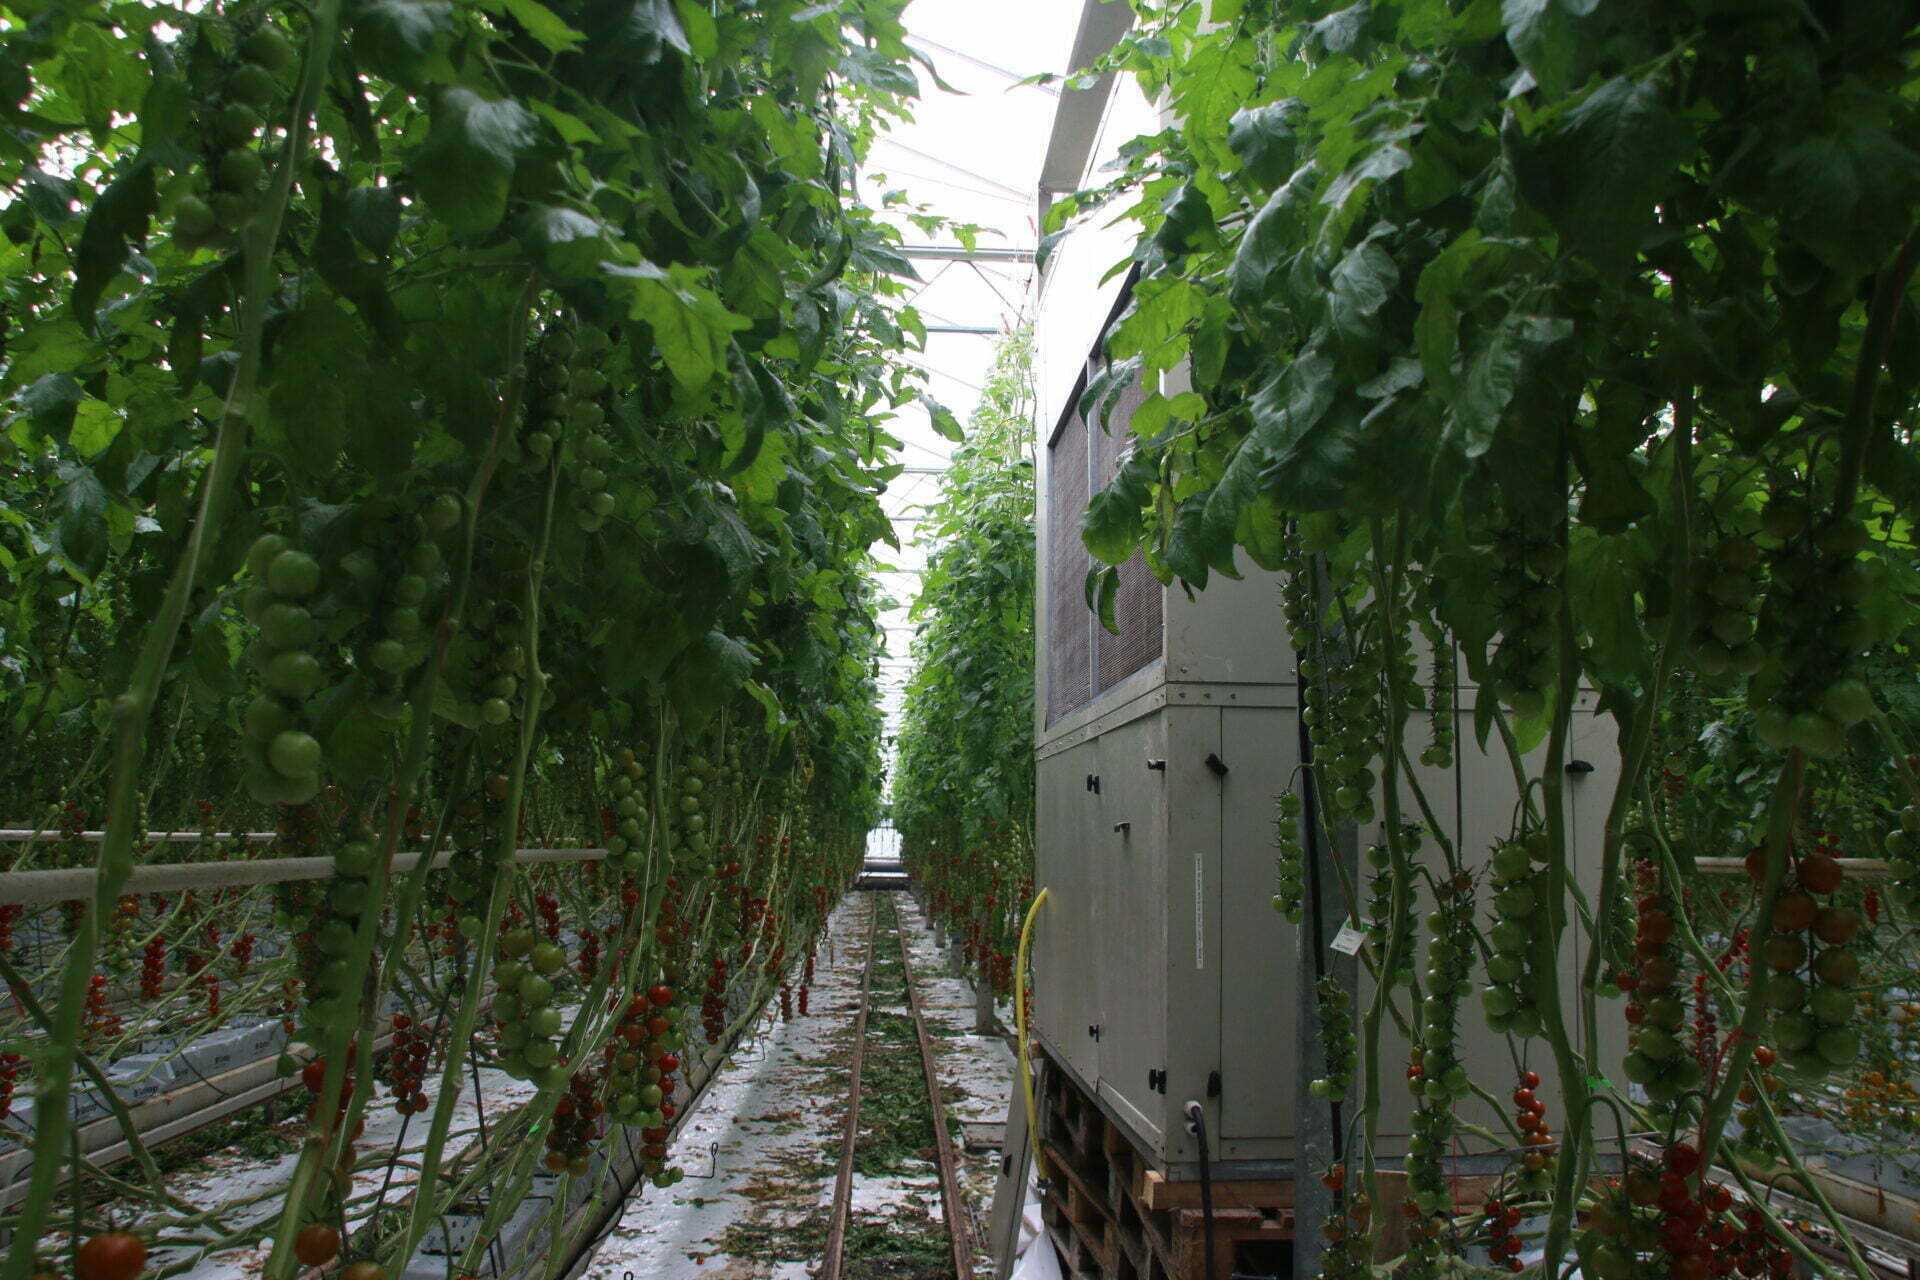 Along the aisles, tomato greenhouse